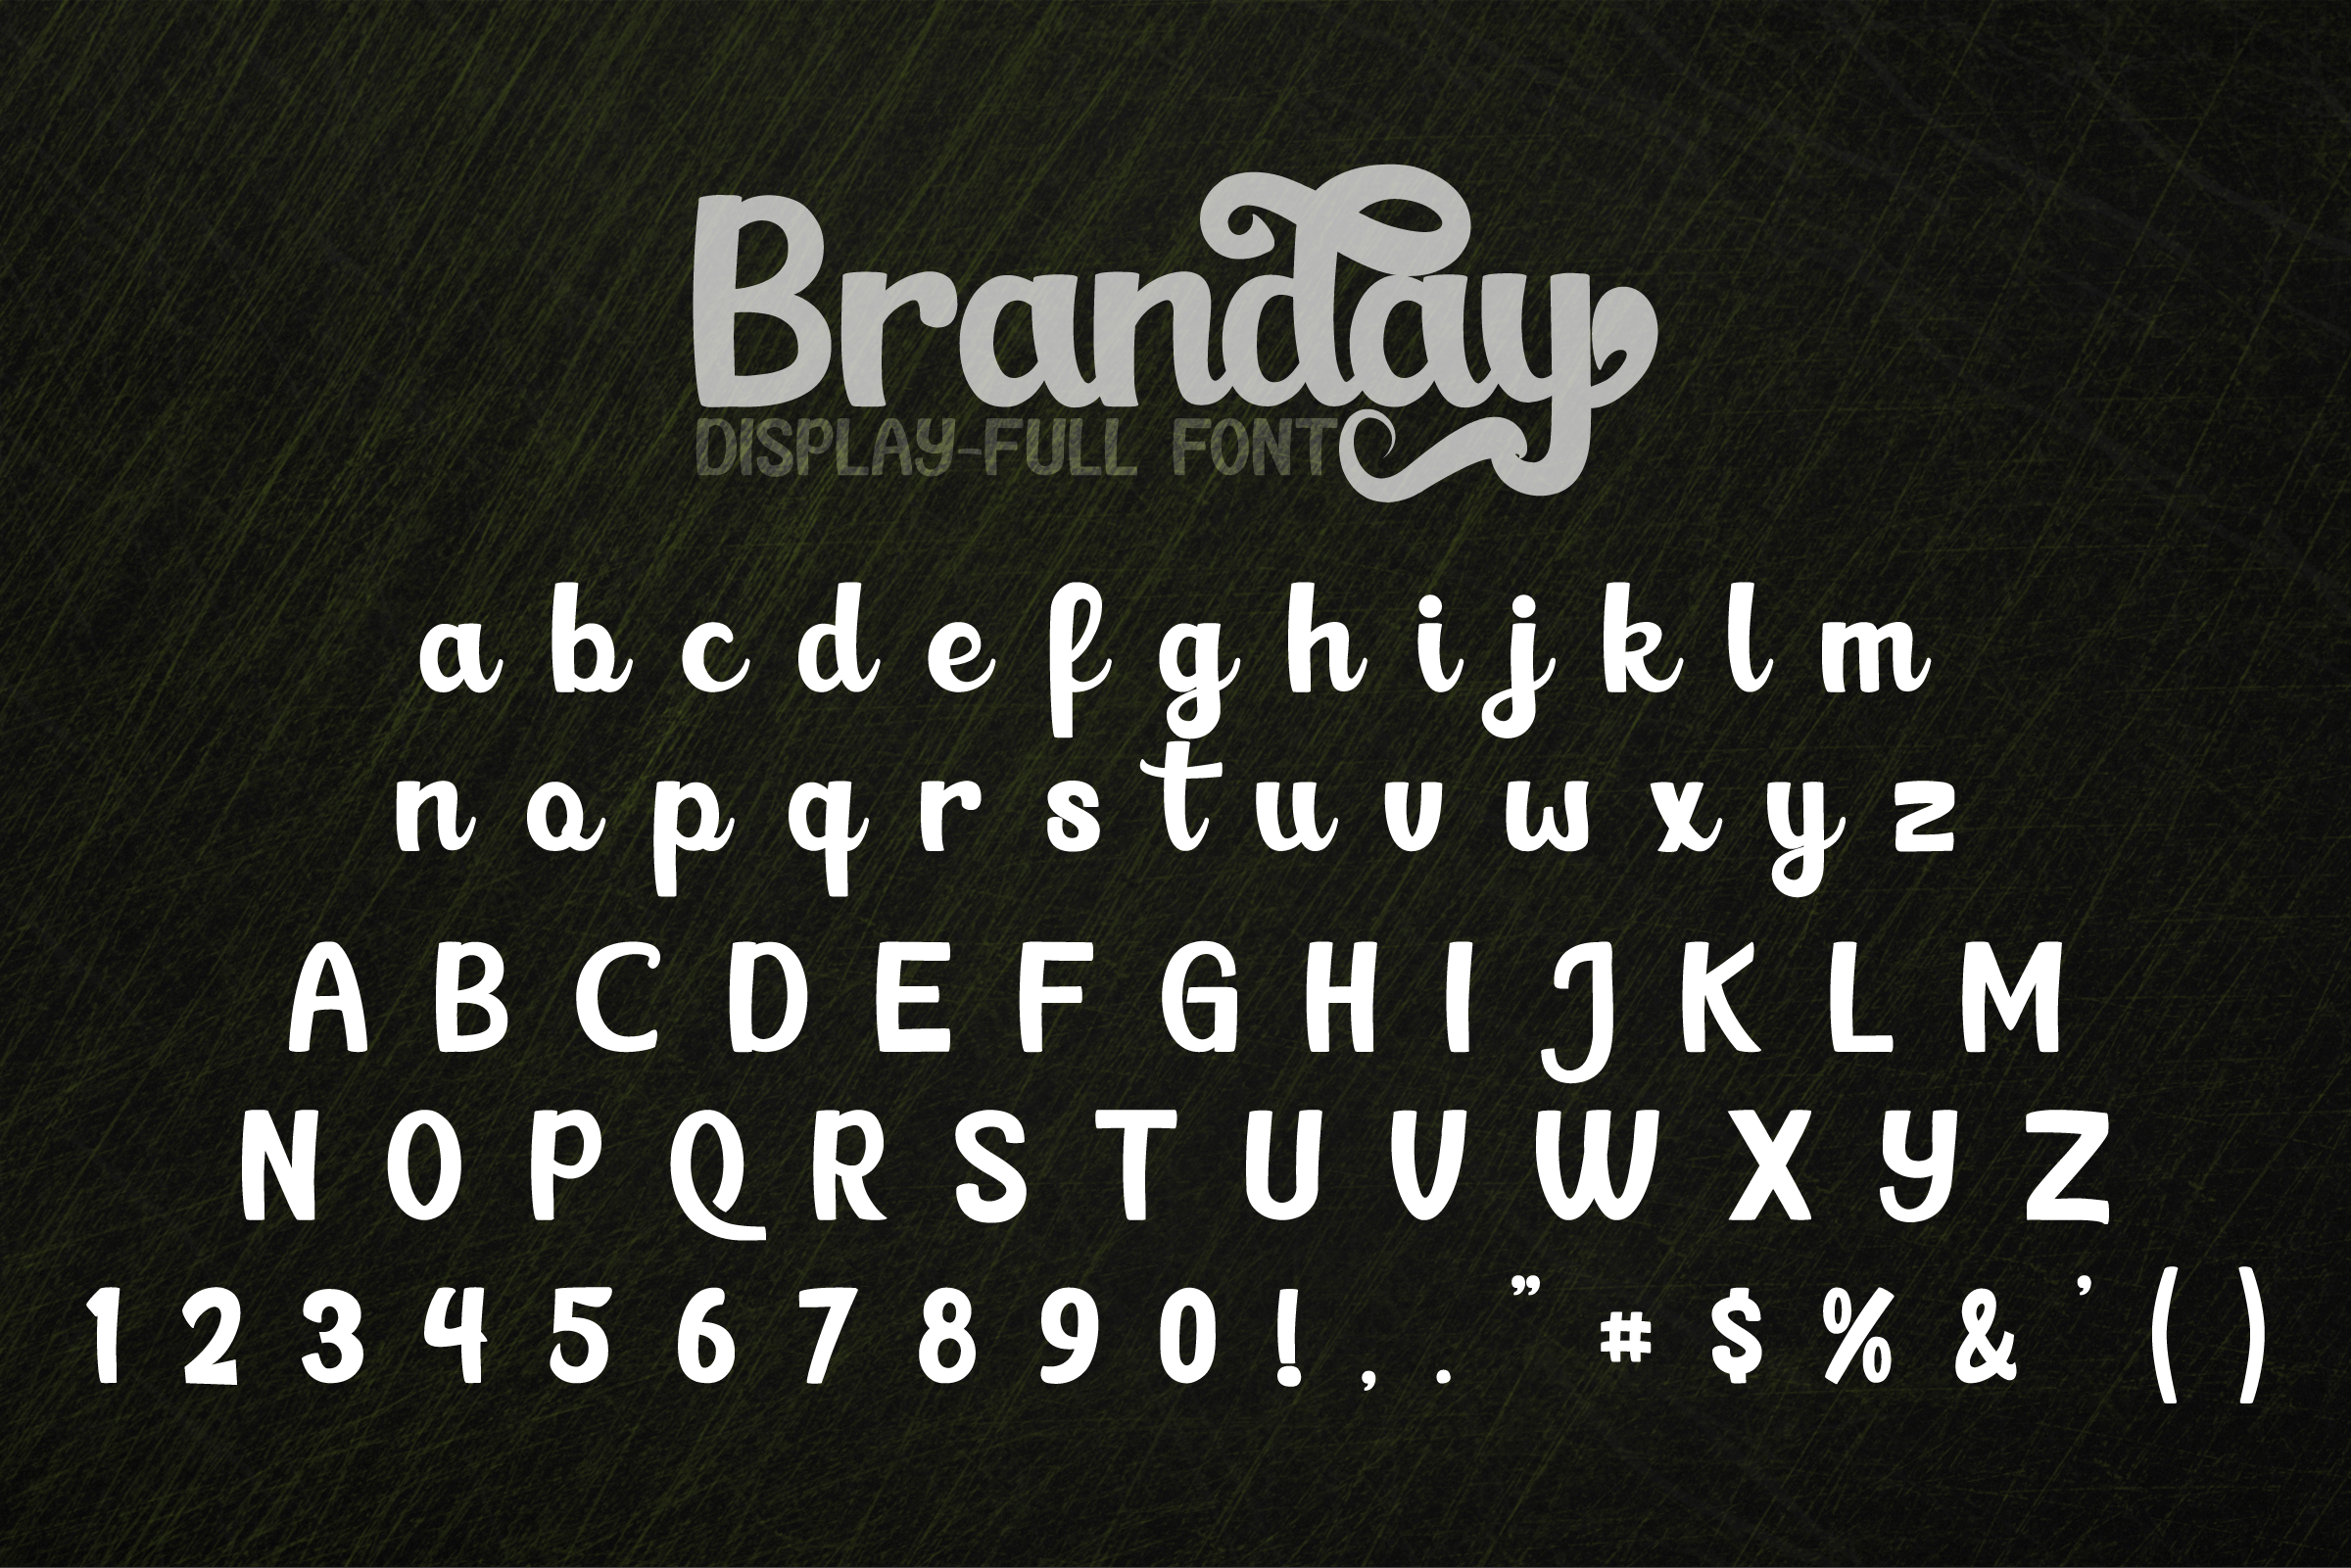 Branday Unique Display Font example image 4